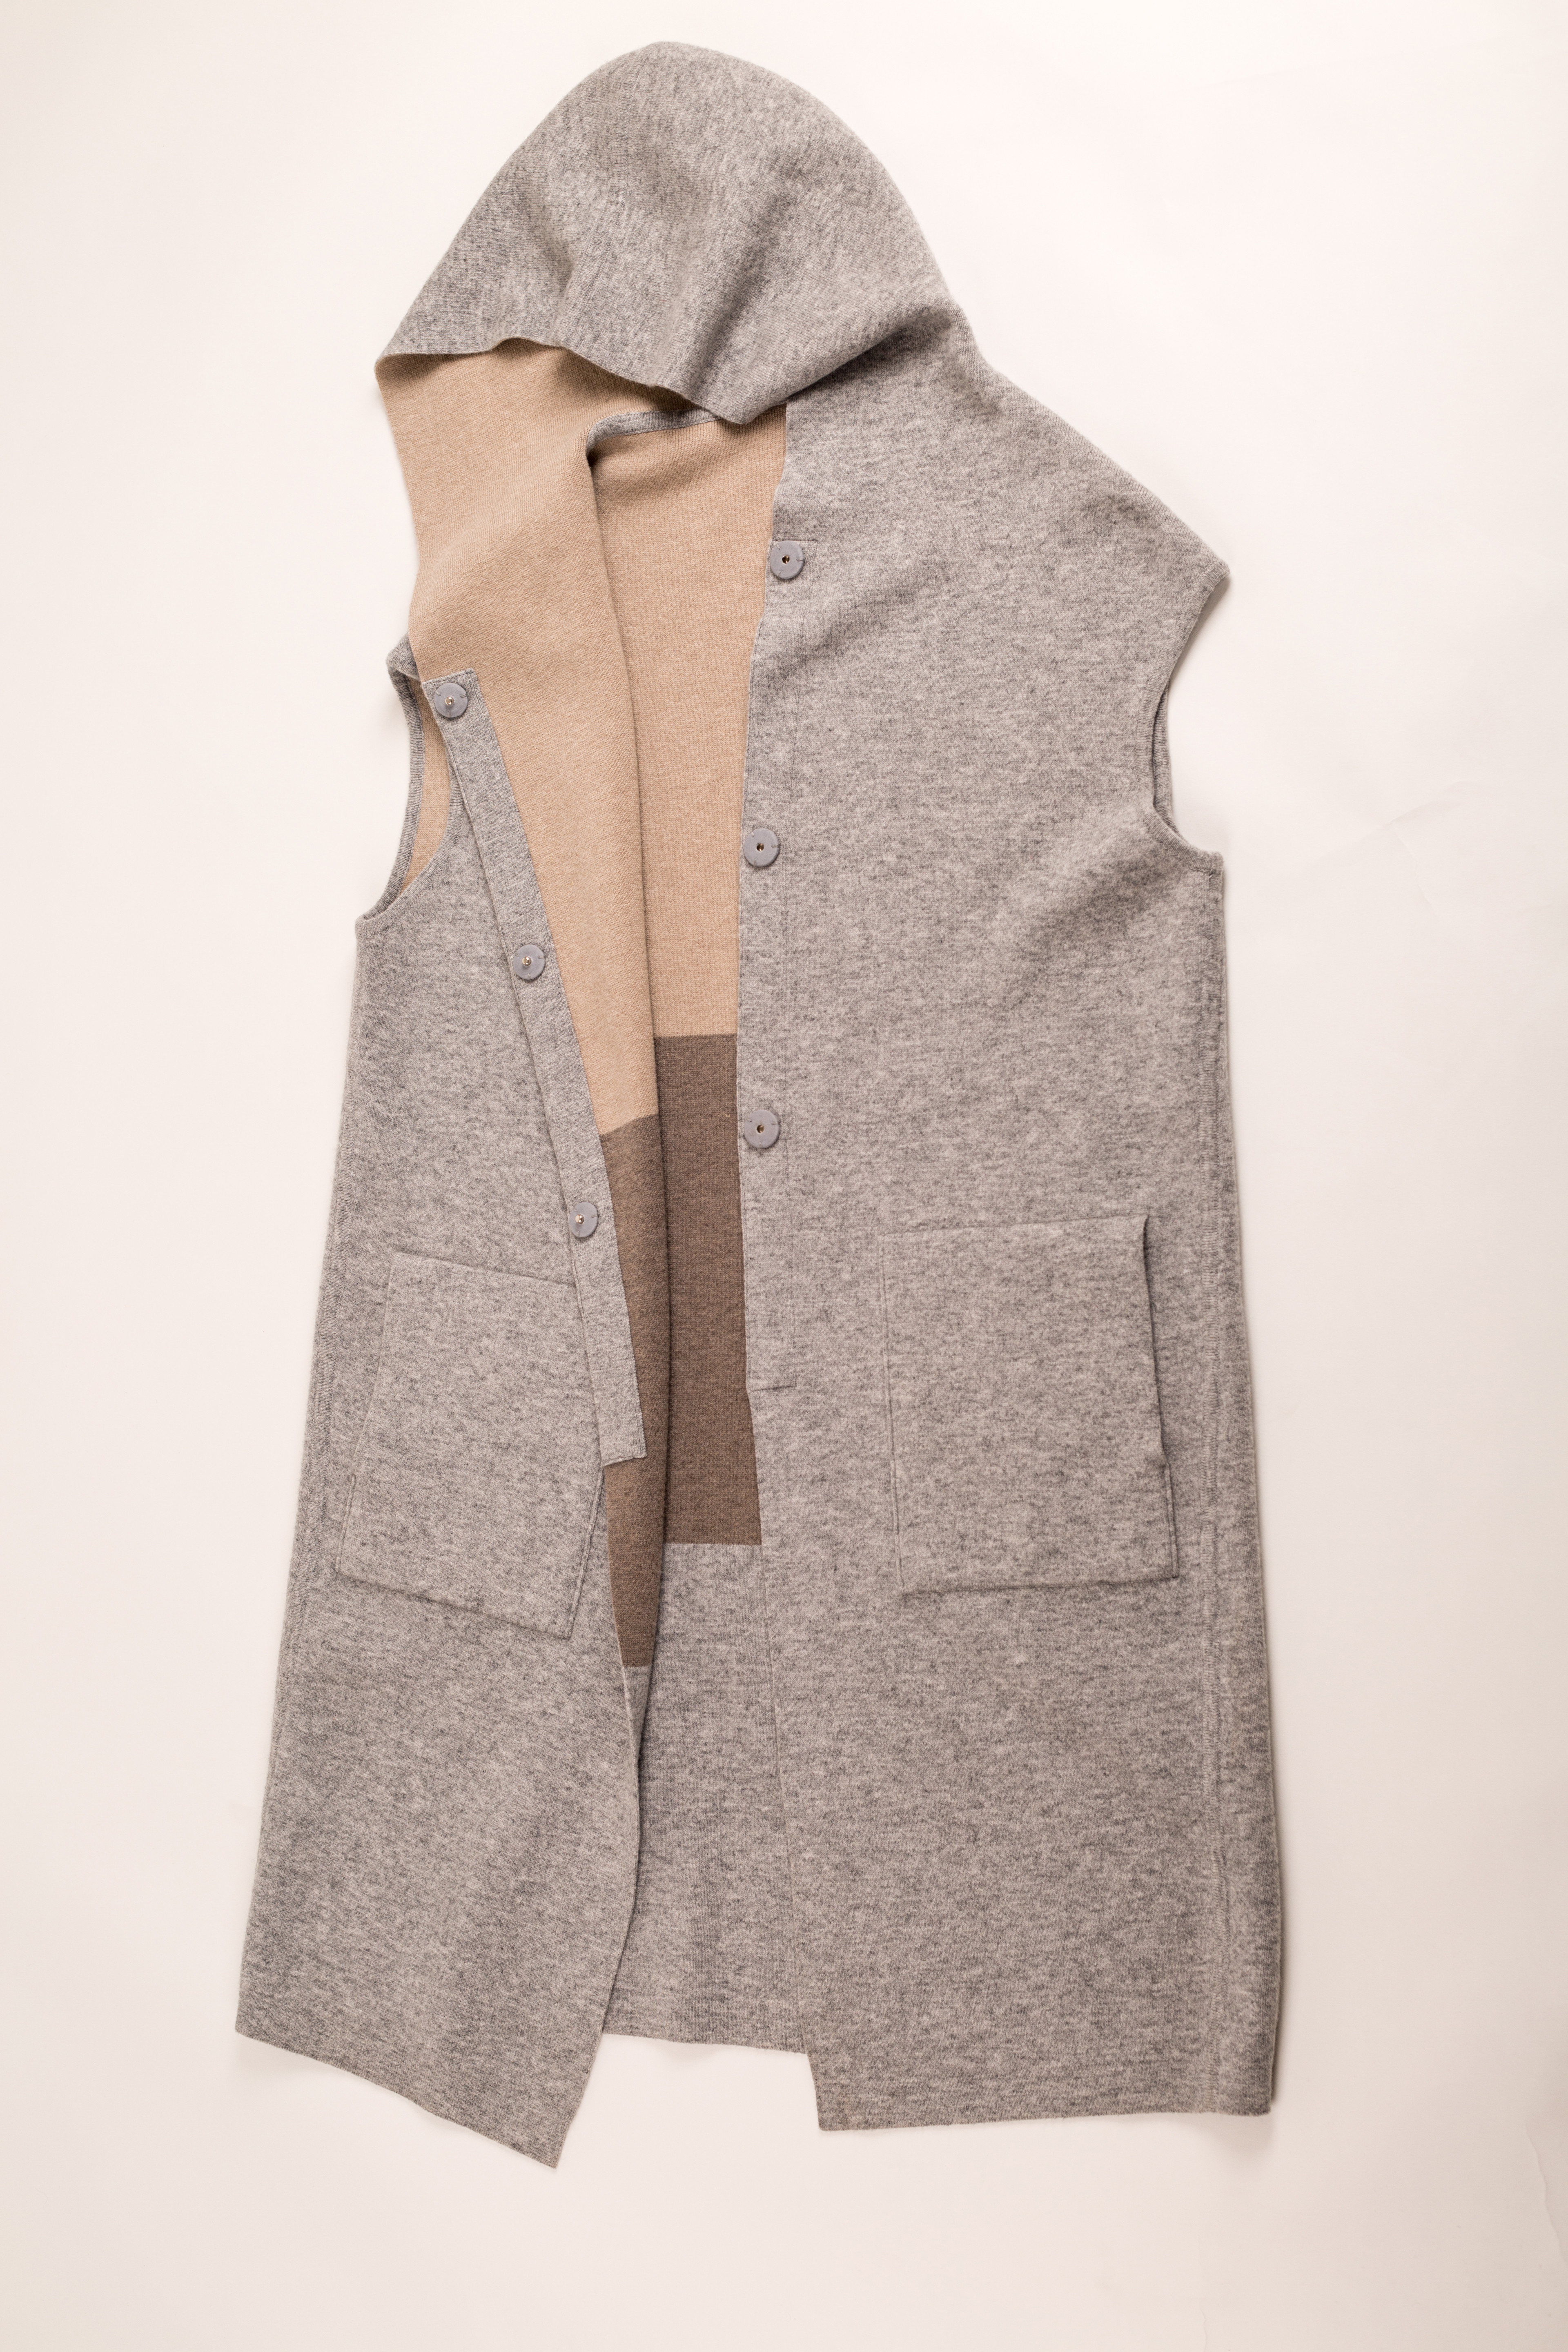 Wool Cashmere Mixed Women'S Long Hoodie Sleeveless Double Face Cardigan